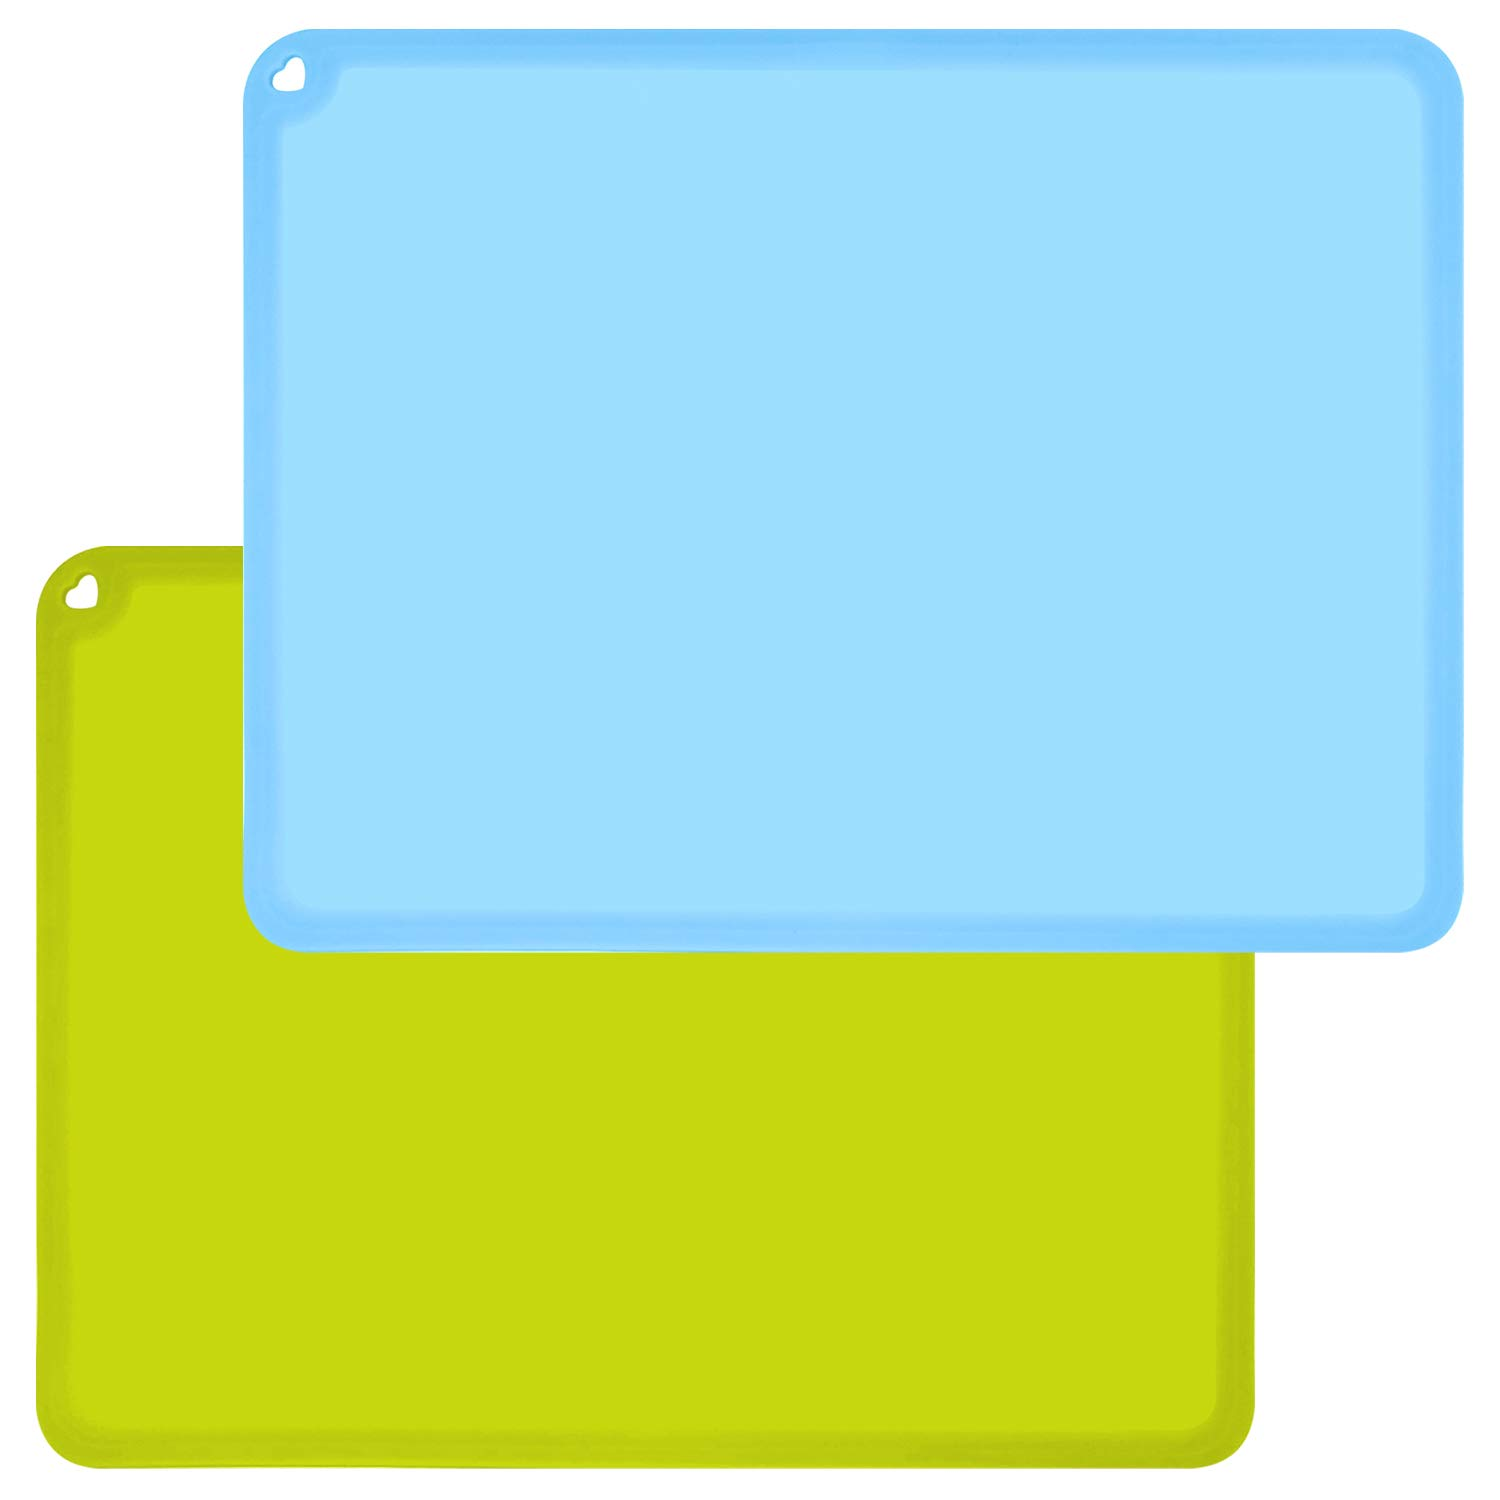 Silicone Kids Placemats, Non-Slip Placemats for Kids Baby Toddlers Table Mats, Children's Dining Food Mats, 2Pack, Baby Blue/Green